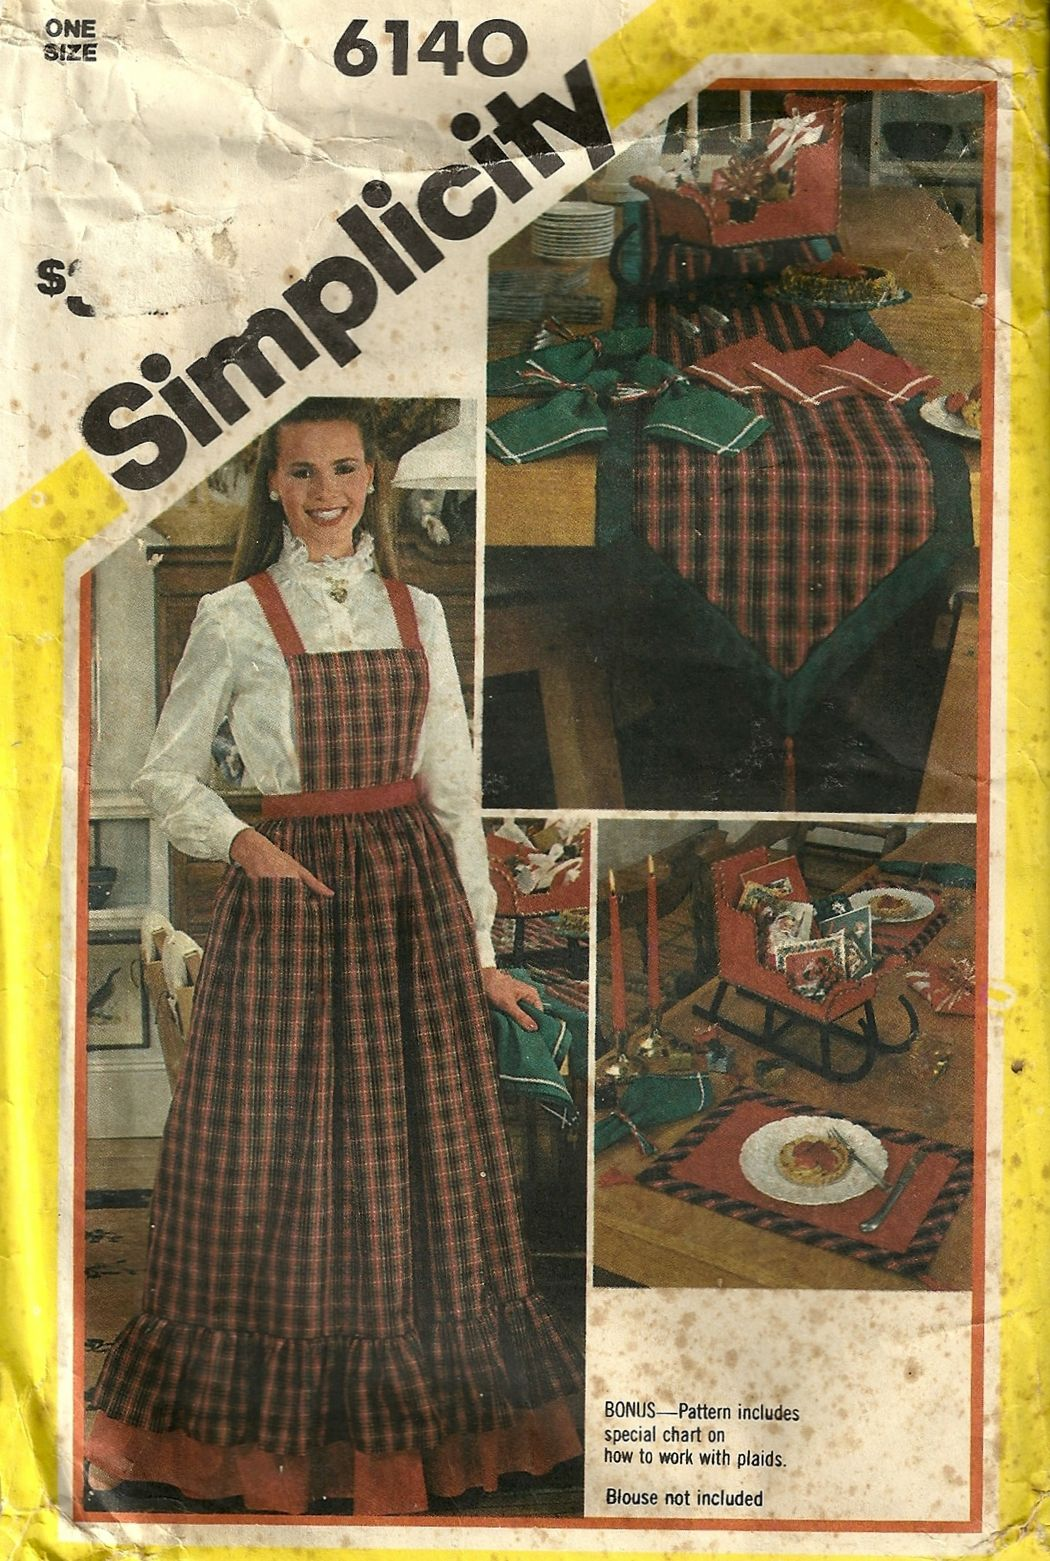 1983 Simplicity 6140 Mrs. Clause Apron & Christmas Decor Sleigh Sewing Pattern